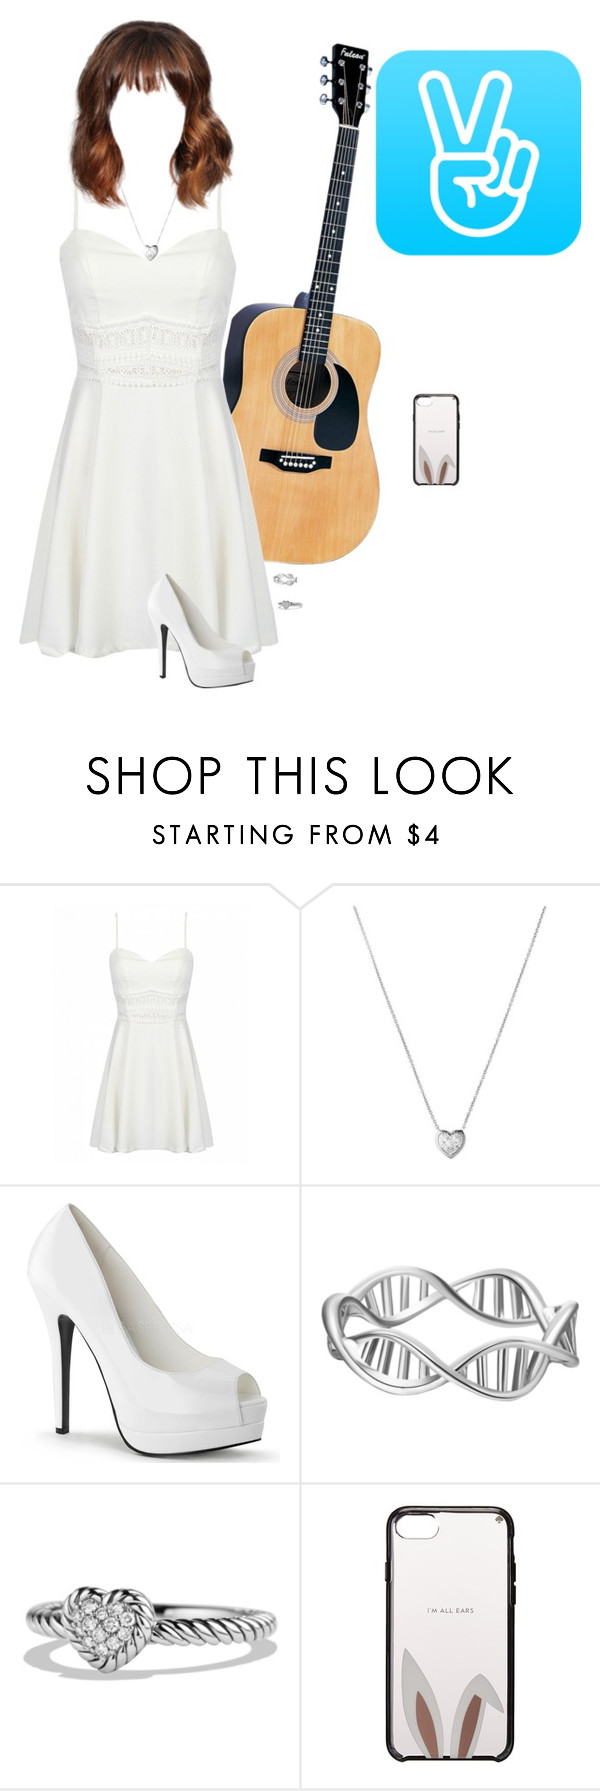 """V App~Luna"" by luna-from-dna ❤ liked on Polyvore featuring Links of London, David Yurman and Kate Spade"